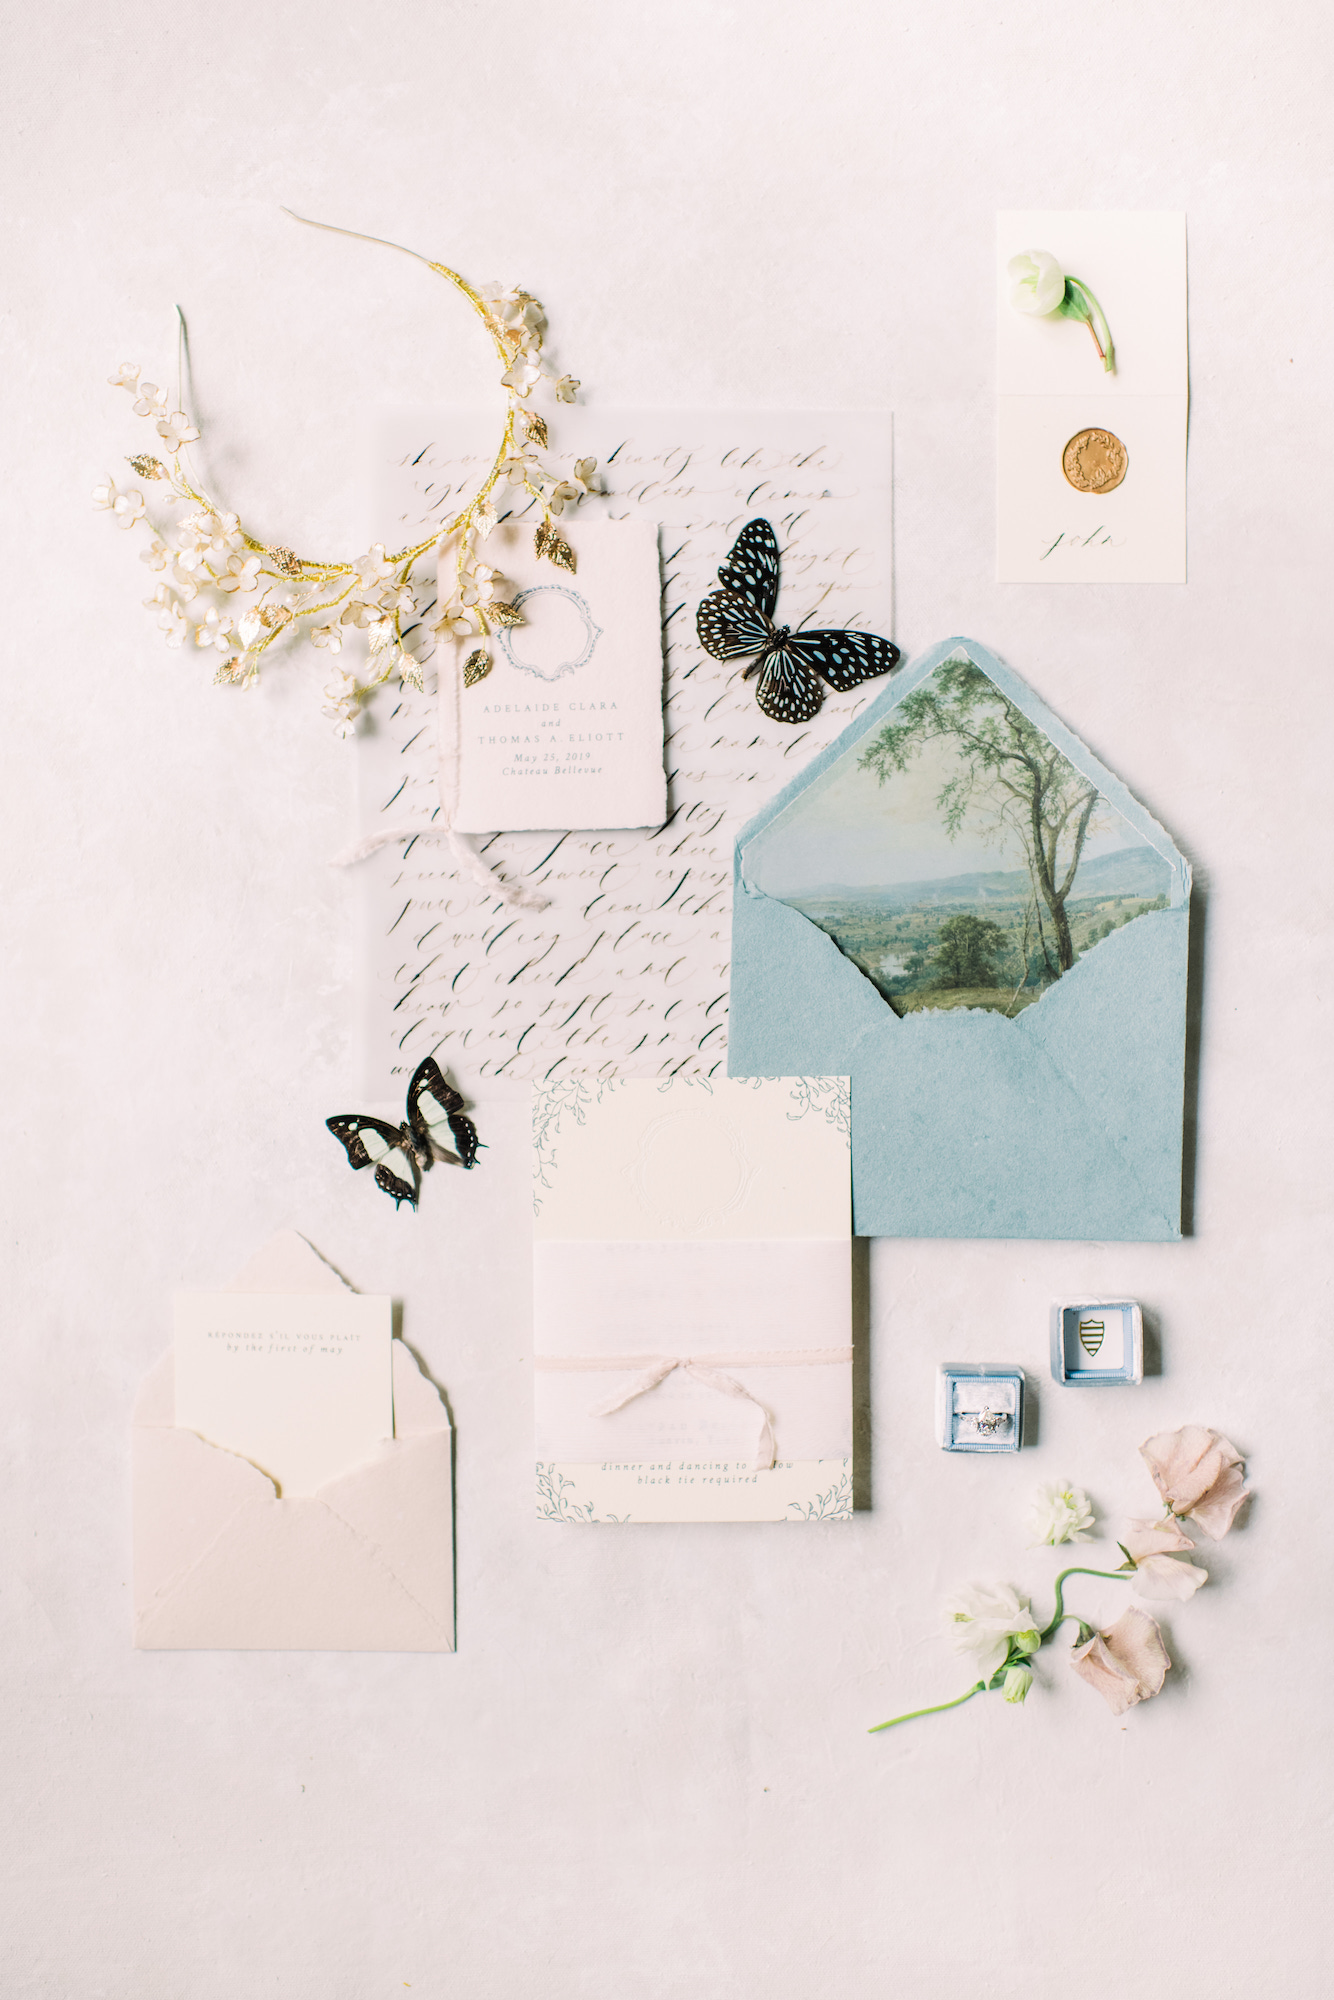 Sojourn-Weddings-Floral-Designer-Flat-Lay-Workshop-Houston-02.jpg